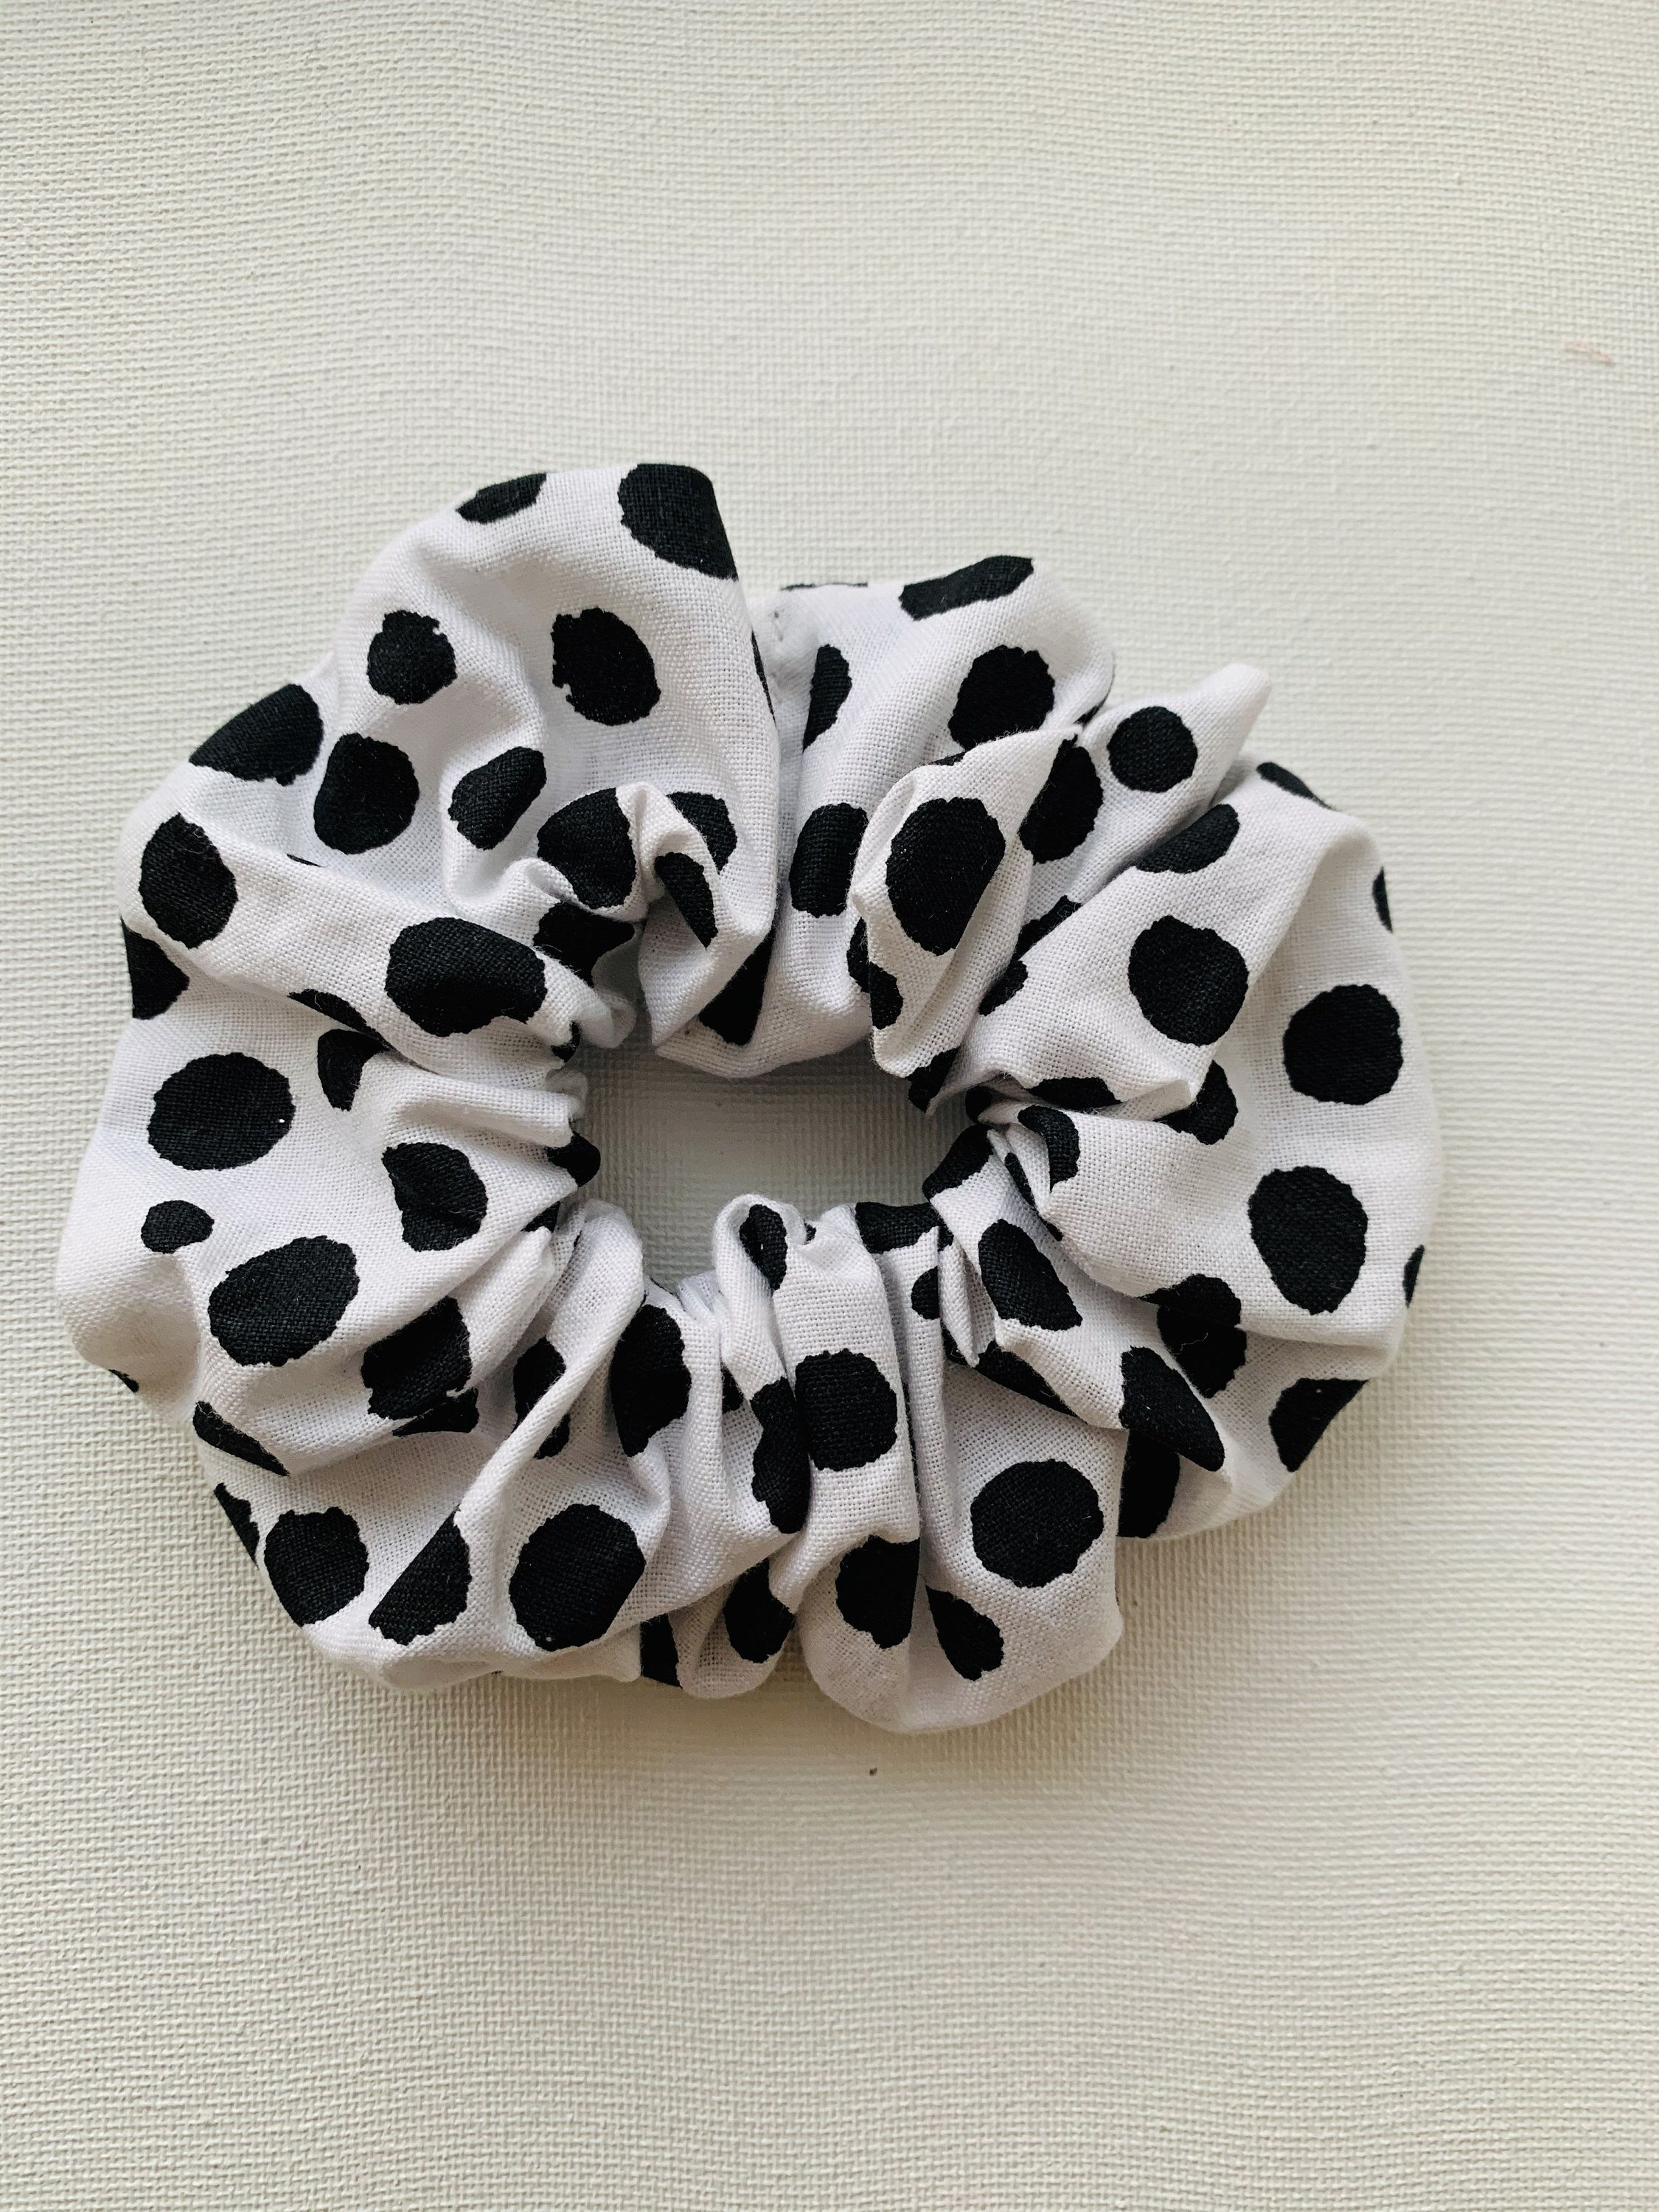 Dalmatian Dots Hair Scrunchie, Scrunchy, Top Knot, Hair Tie, Hair Elastic, Hair Accessories, Gift, Present, Handsewn /; #hairscrunchie